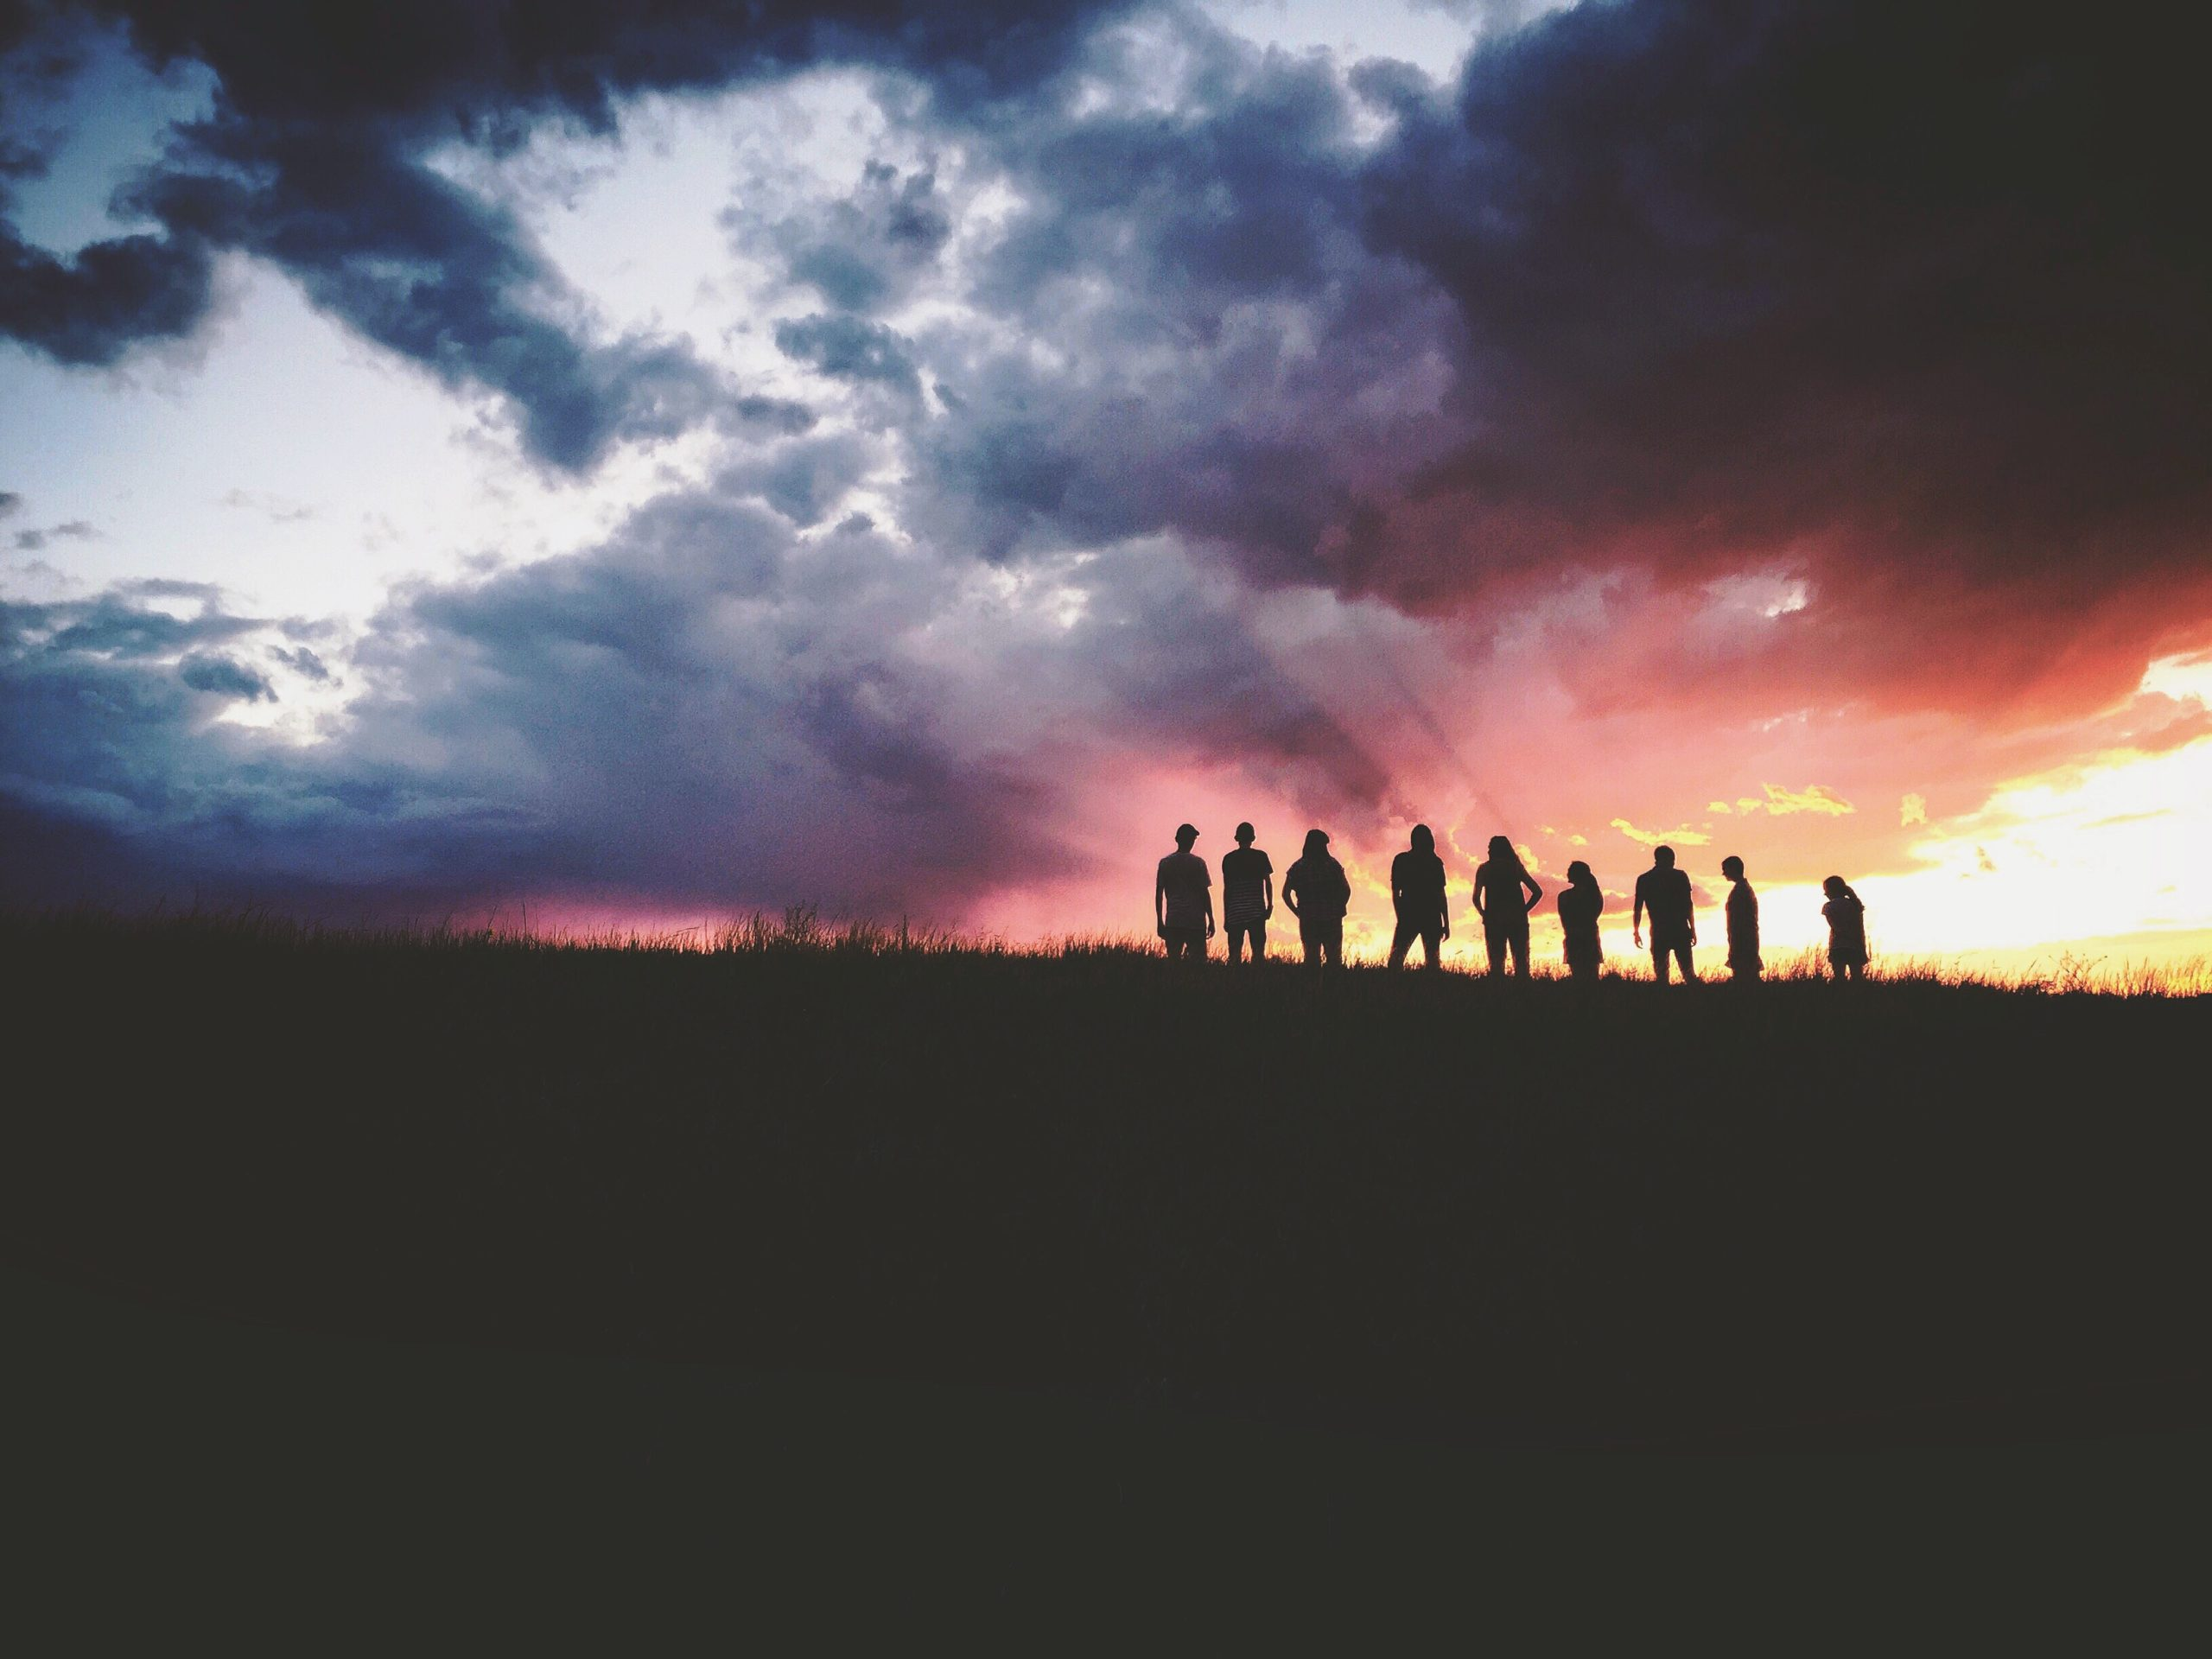 A line of people silhouetted against a lovely sunset.